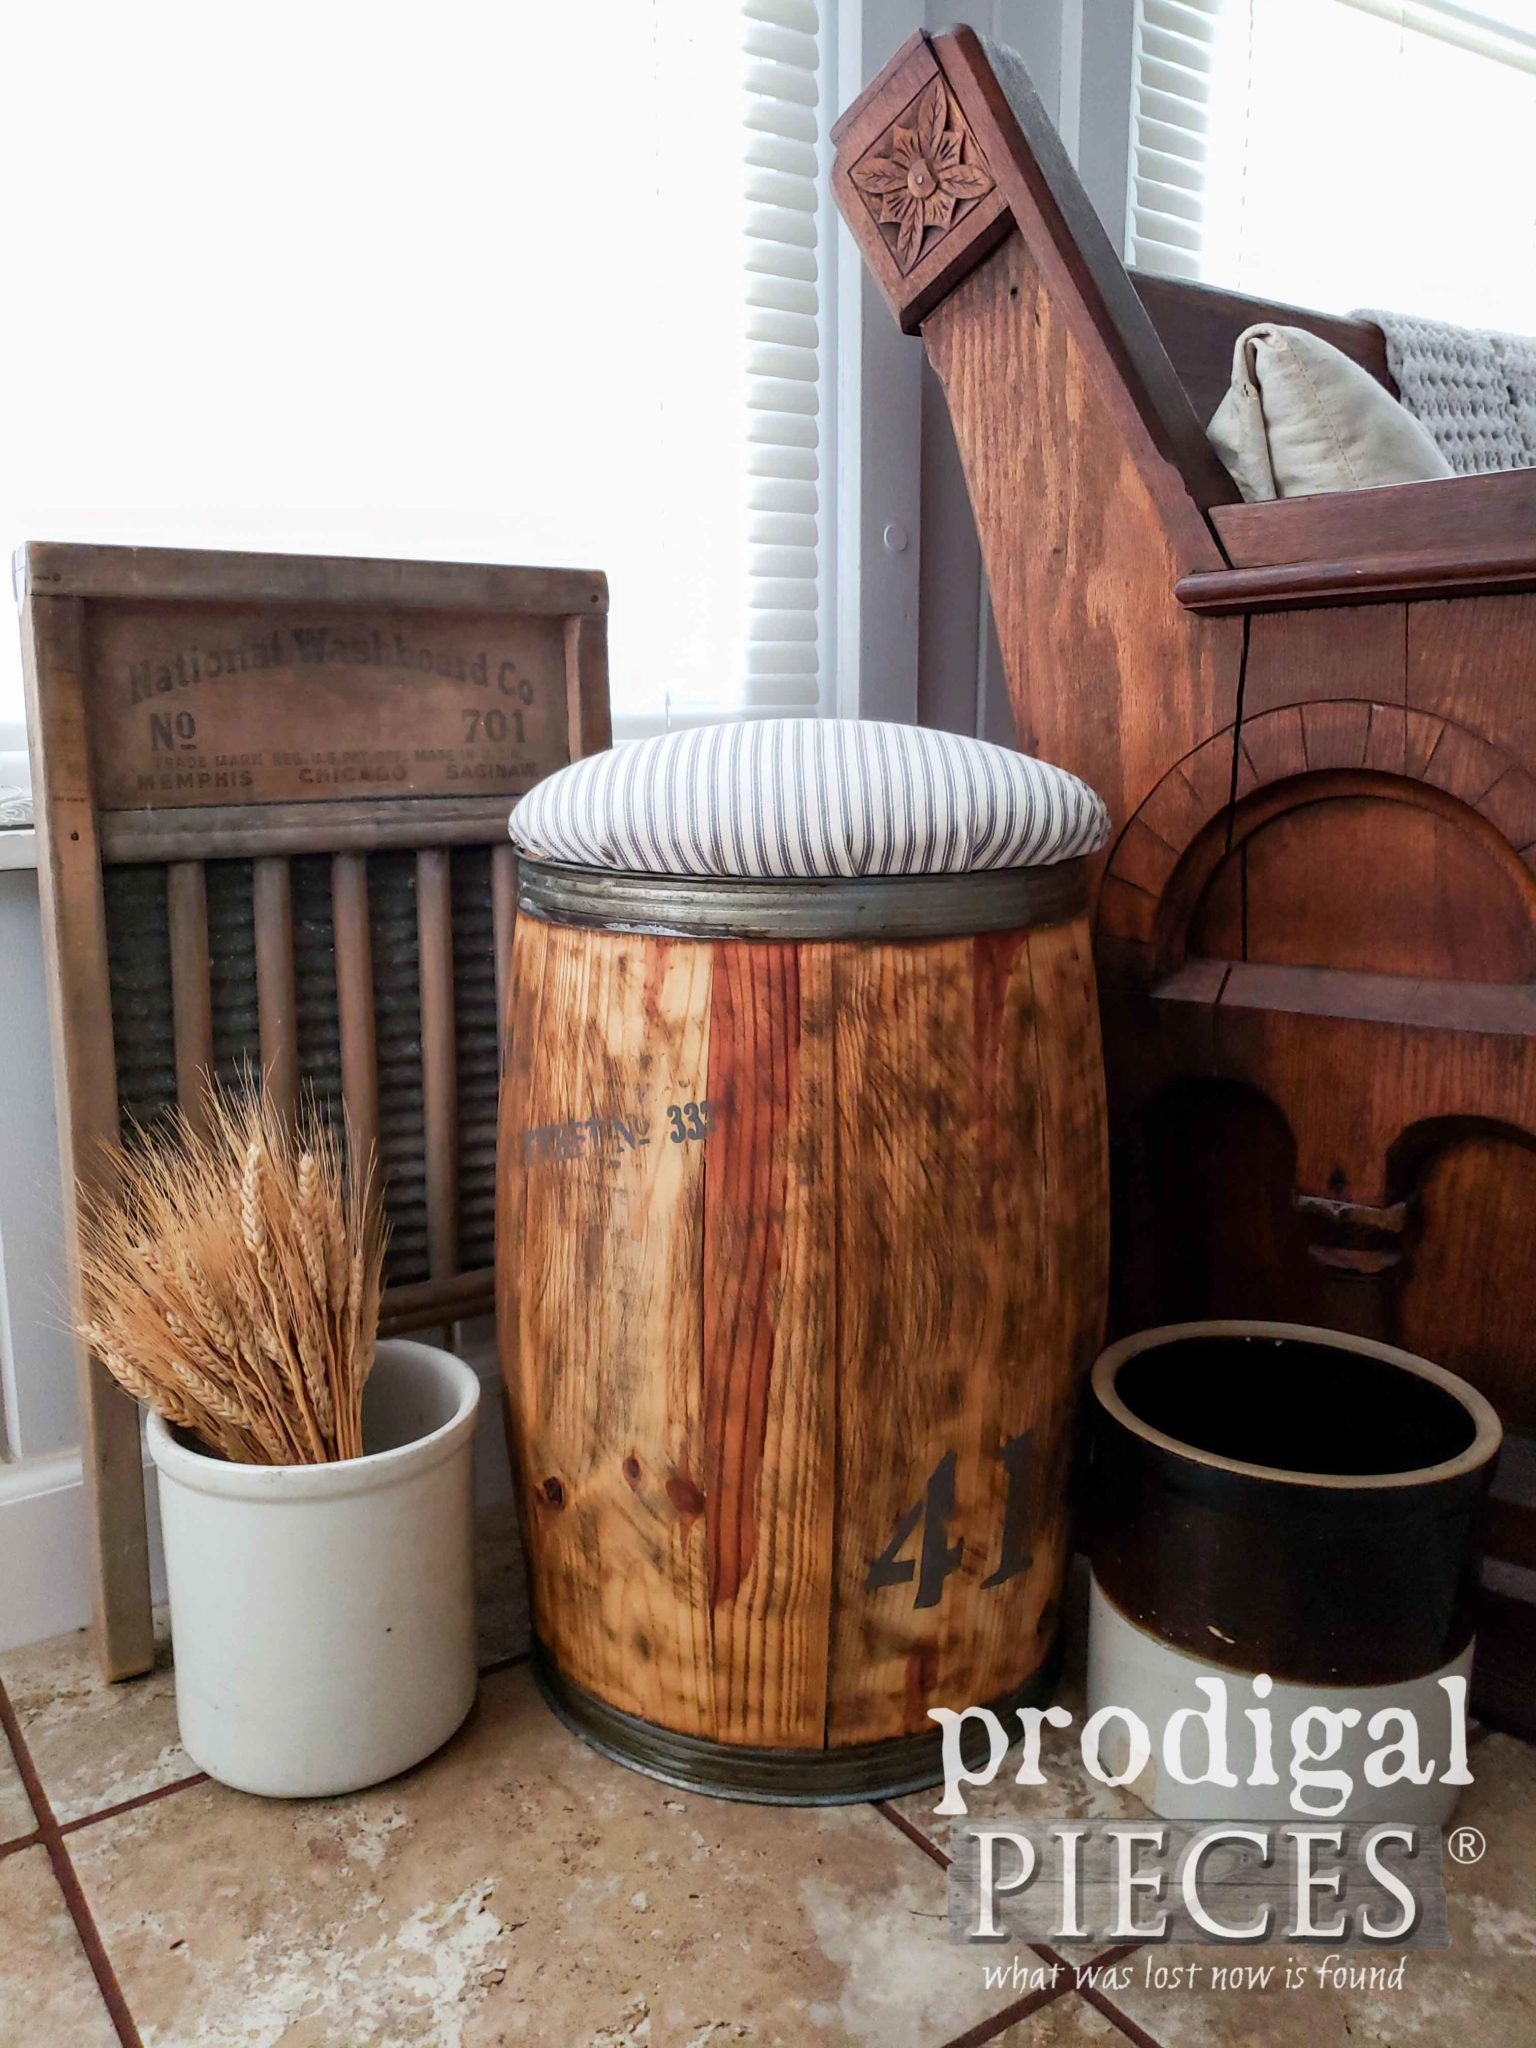 Rustic Farmhouse DIY Decor with Nail Barrel Stool with Gray Ticking Upholstery by Larissa of Prodigal Pieces | prodigalpieces.com #prodigalpieces #diy #handmade